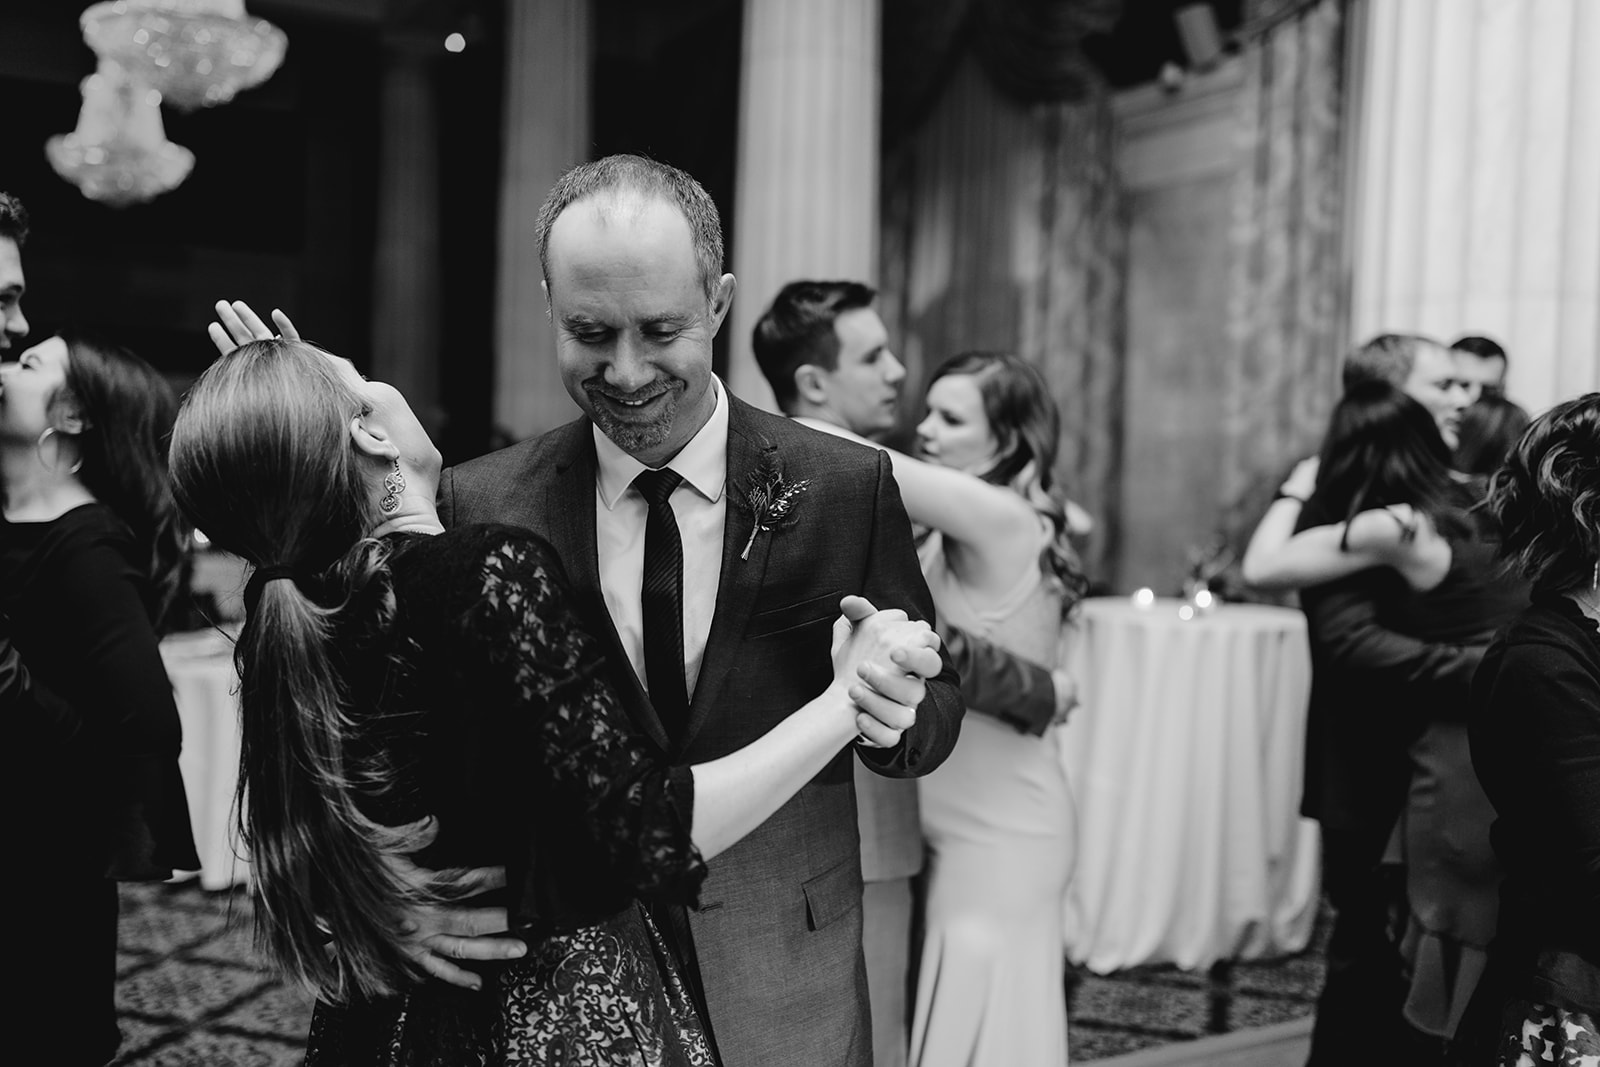 Guests dancing during a Grand Rapids, Michigan wedding